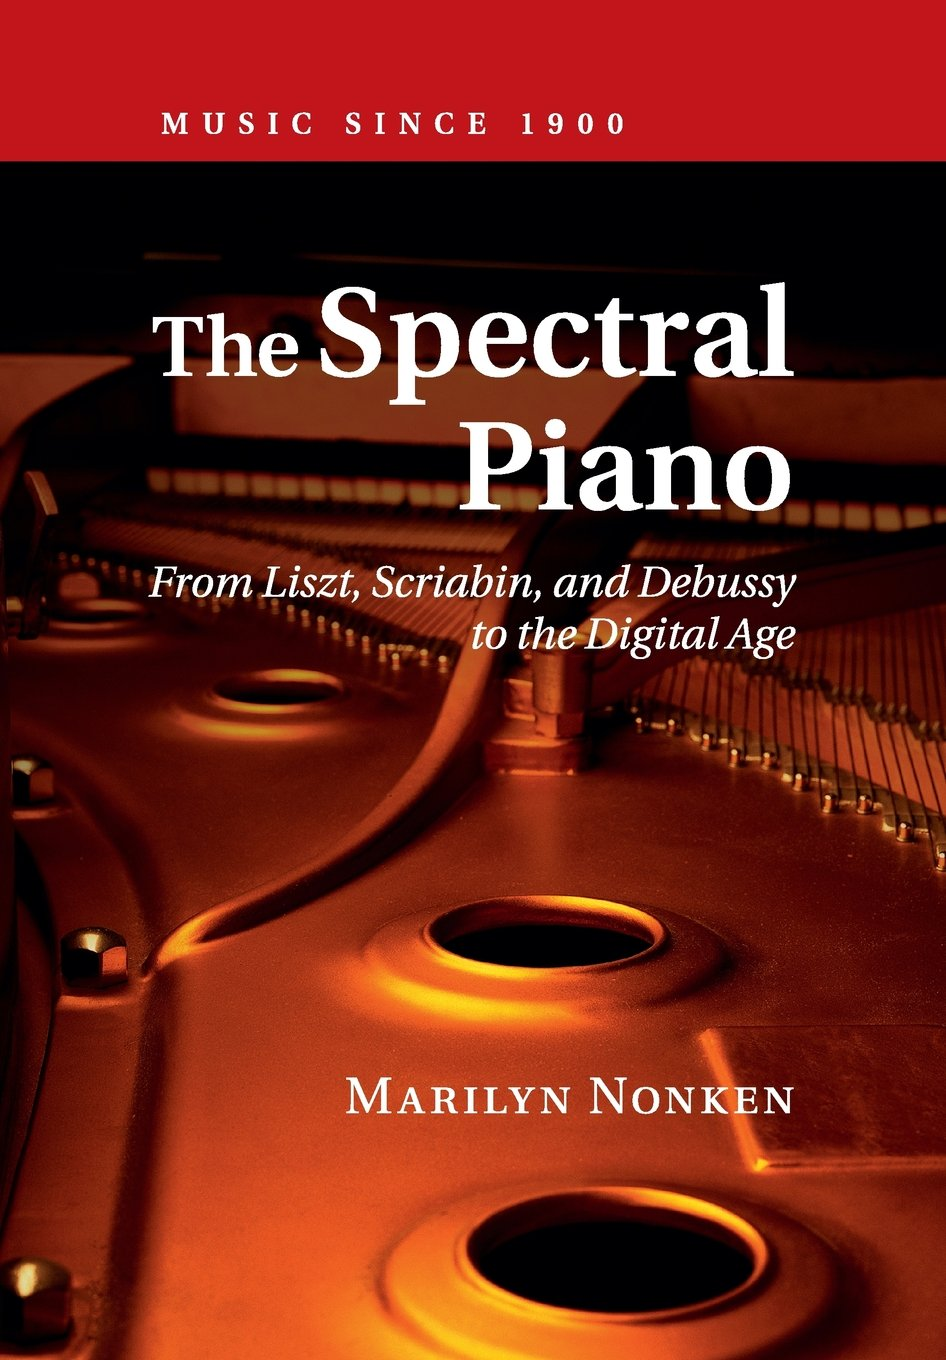 The Spectral Piano: From Liszt, Scriabin, And Debussy To The Digital Age  (music Since 1900): Marilyn Nonken: 9781316616413: Amazon: Books